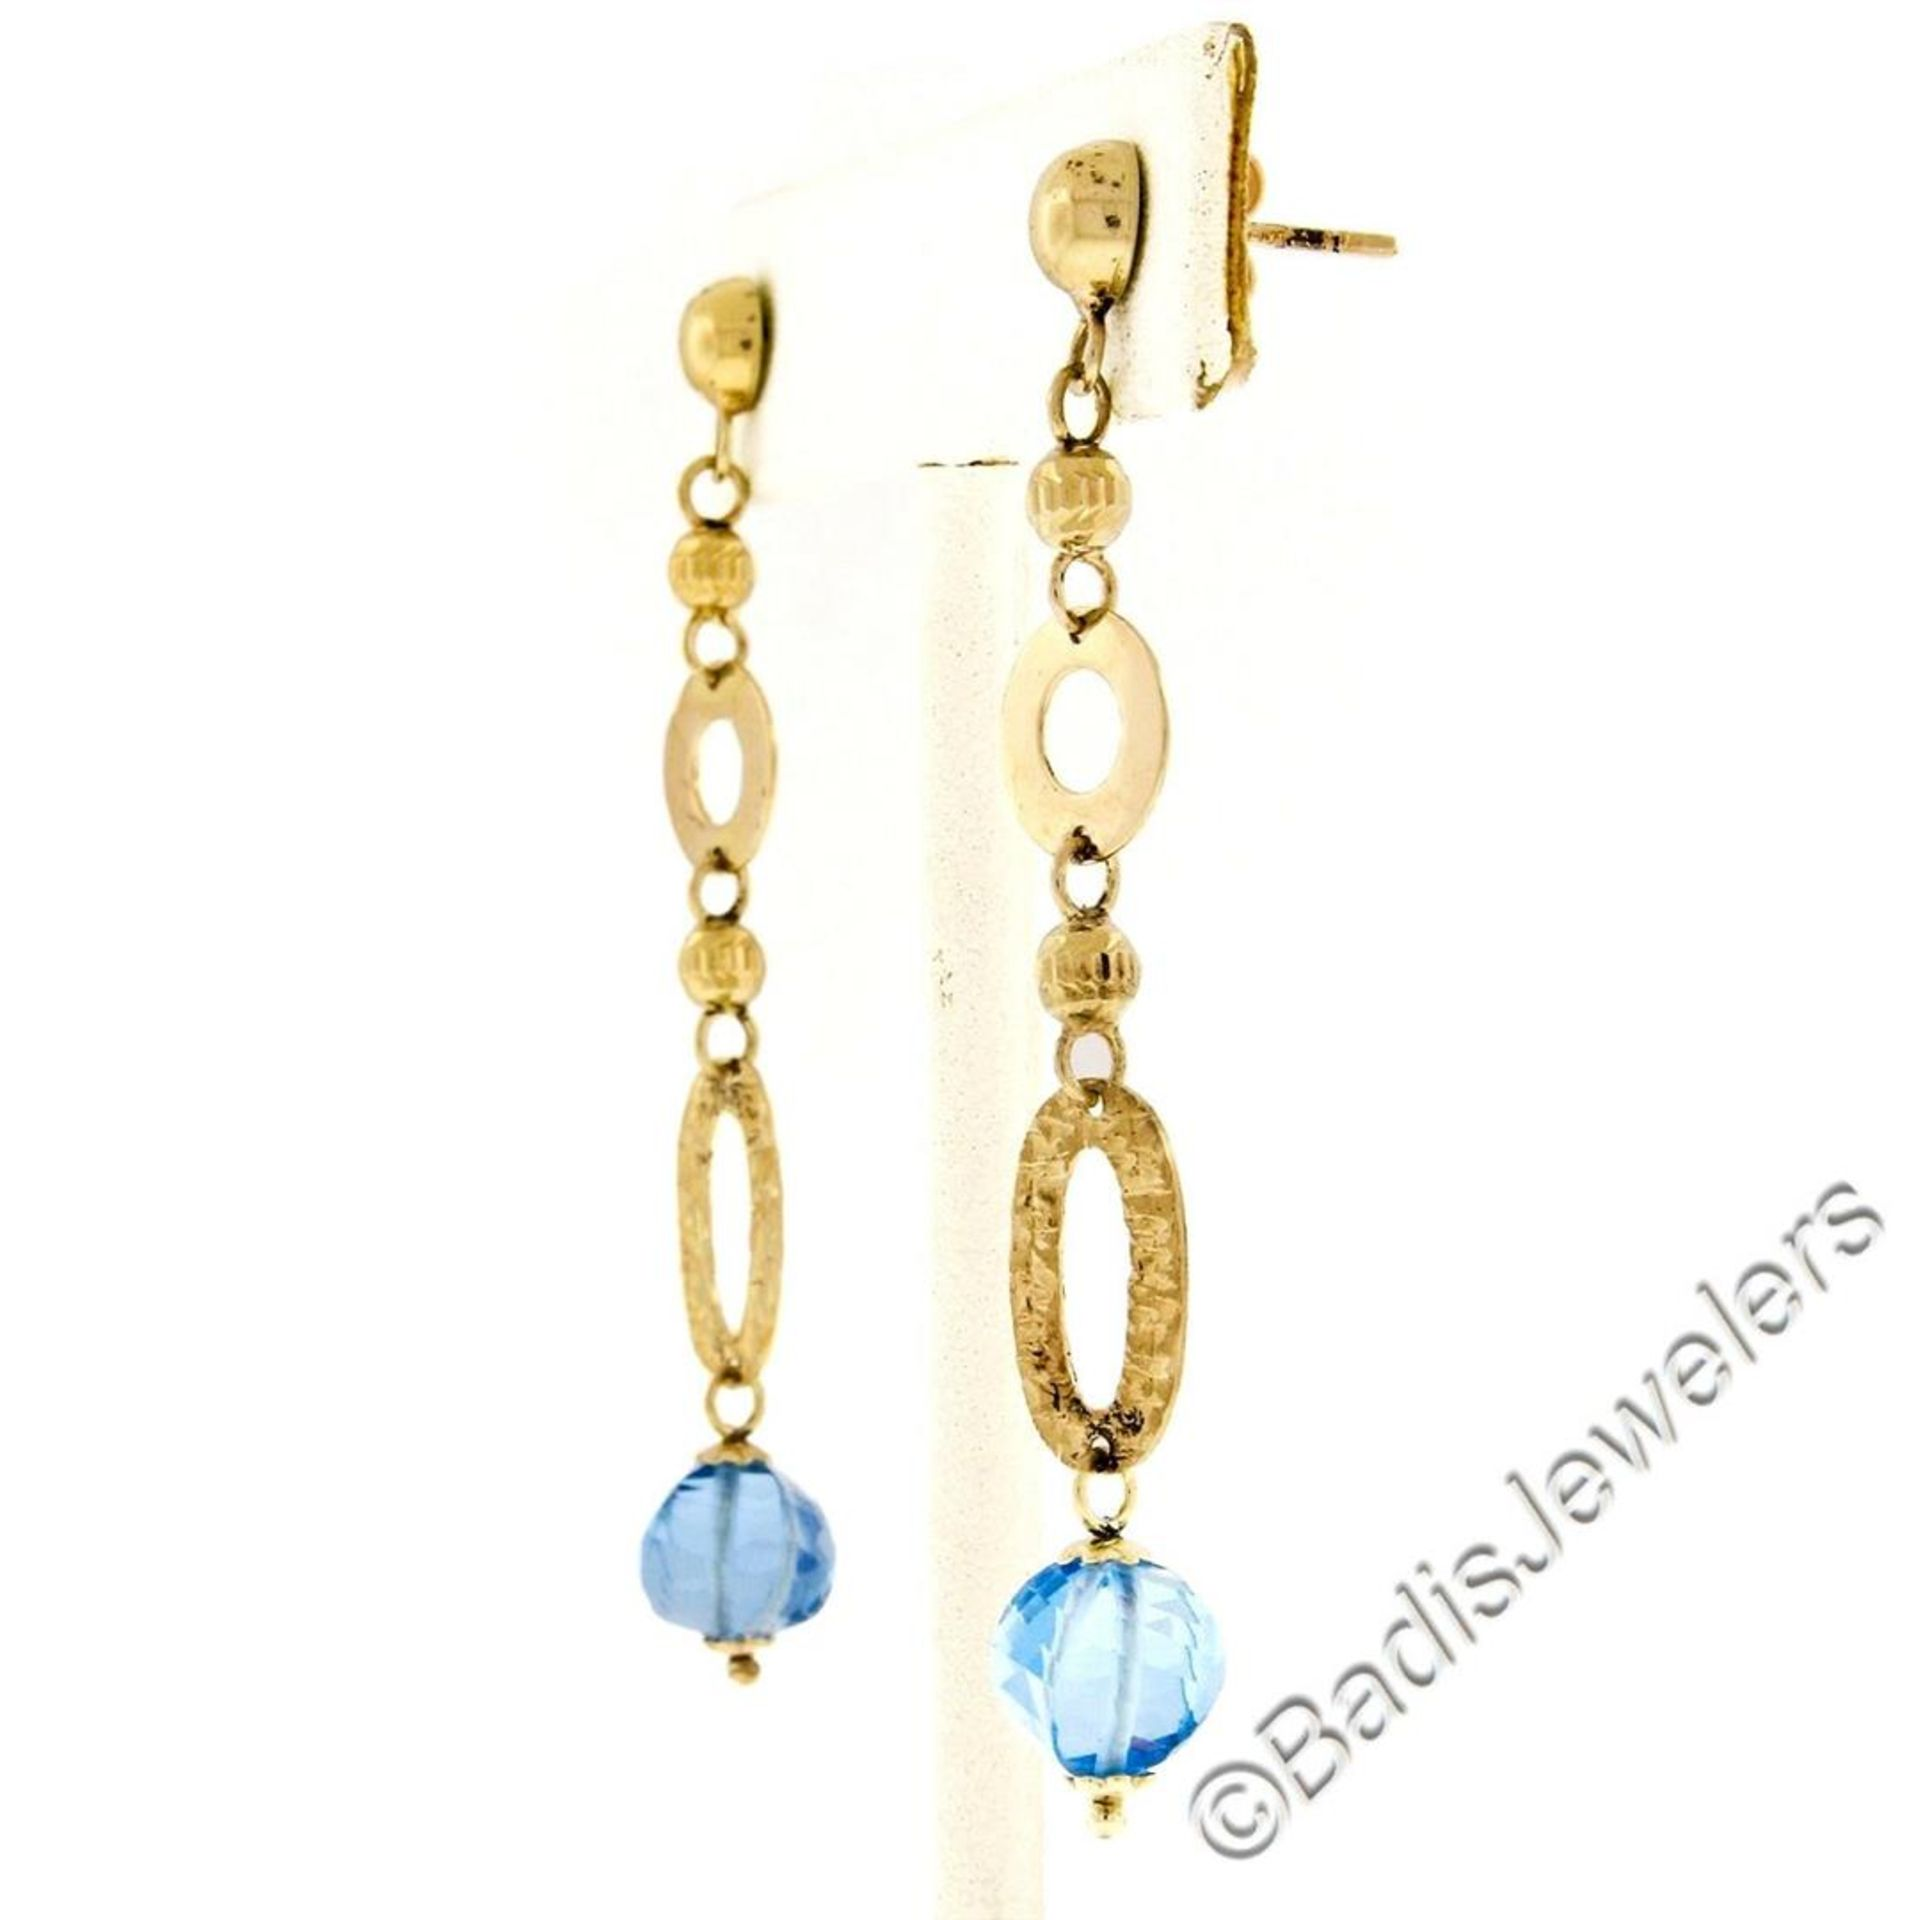 14kt Yellow Gold Briolette Cut Blue Topaz Bead Long Textured Dangle Earrings - Image 3 of 6